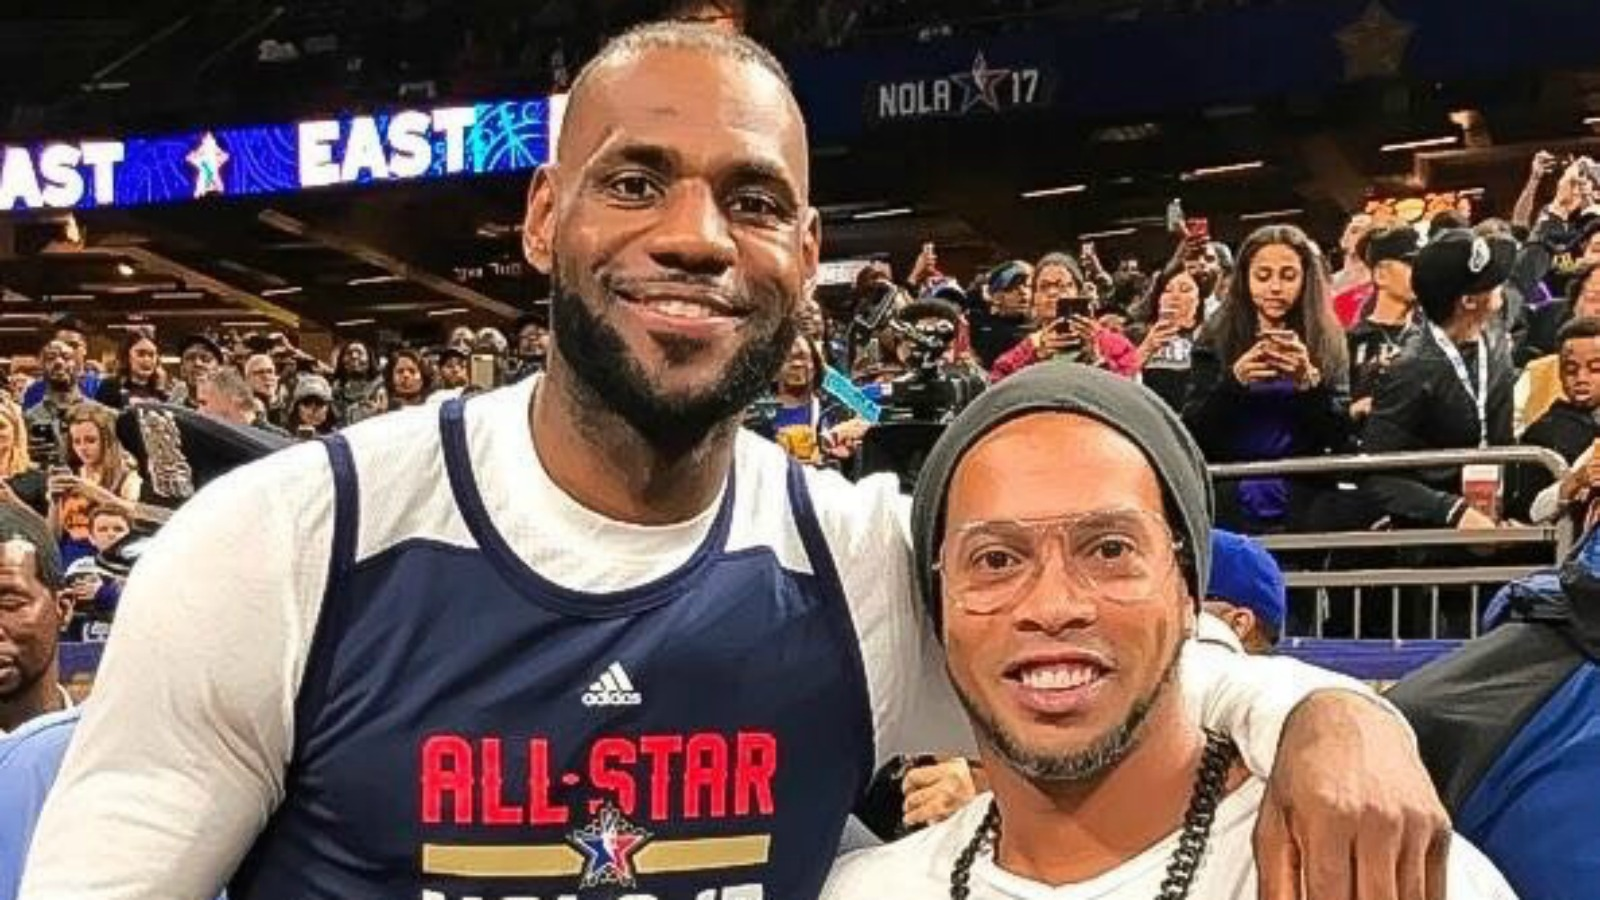 5a65b989720 Check out Barcelona legend Ronaldinho hanging out at NBA All-Star weekend